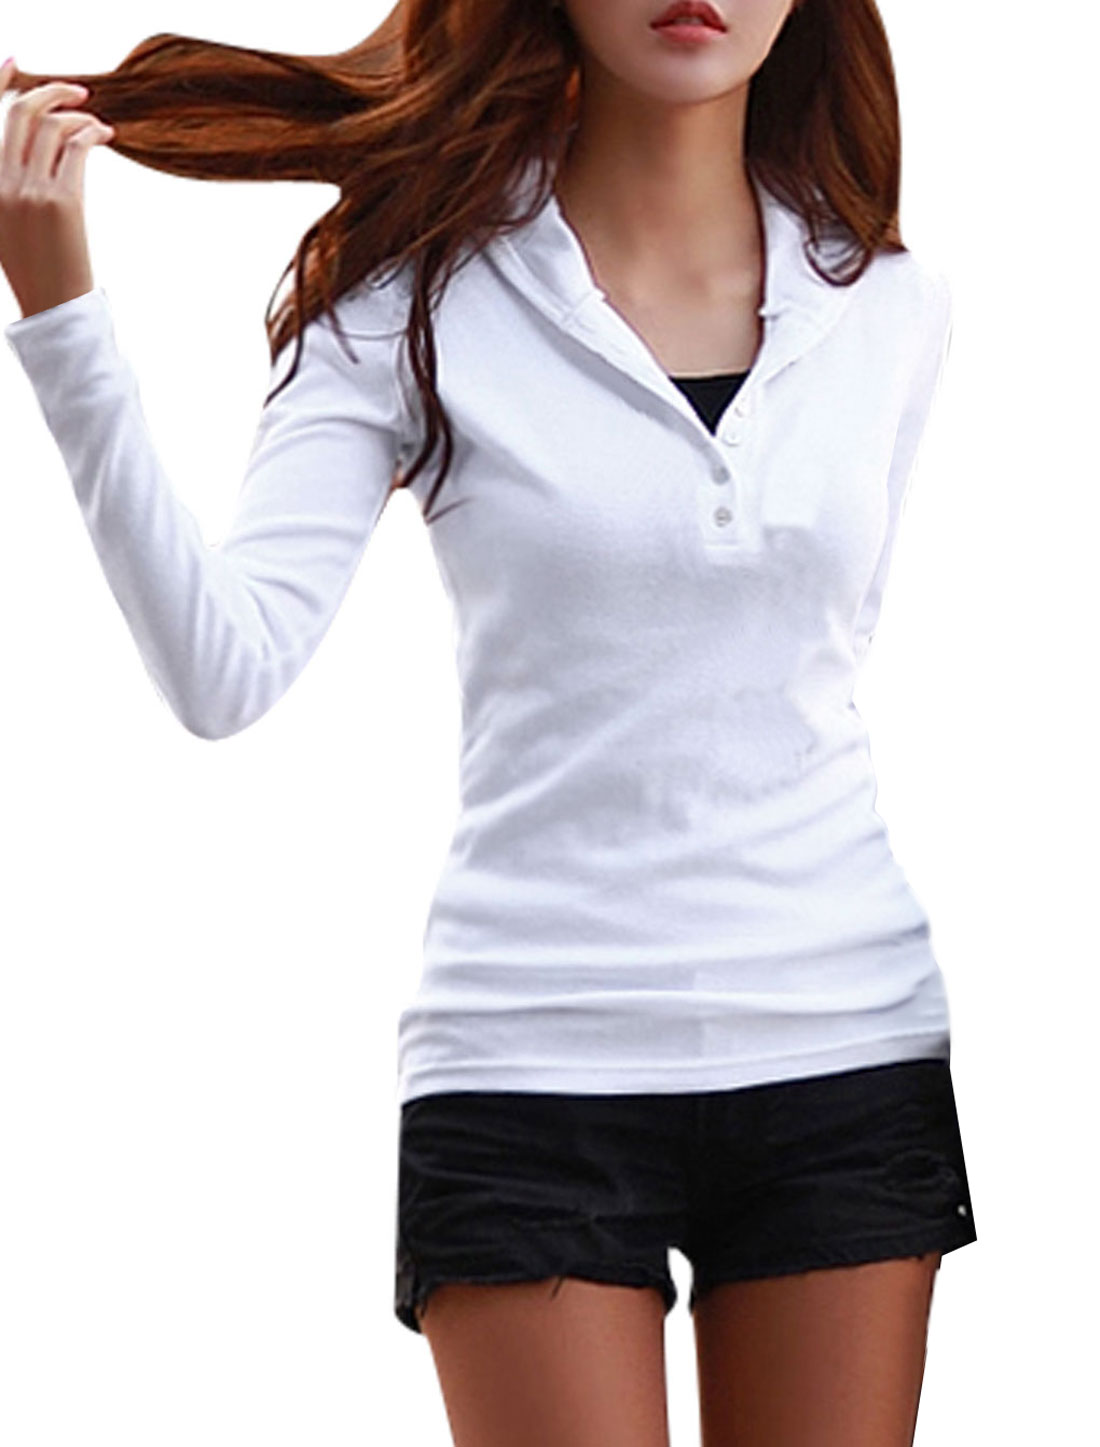 Woman Full Sleeves Pullover Slim Fit White Hooded Shirt M